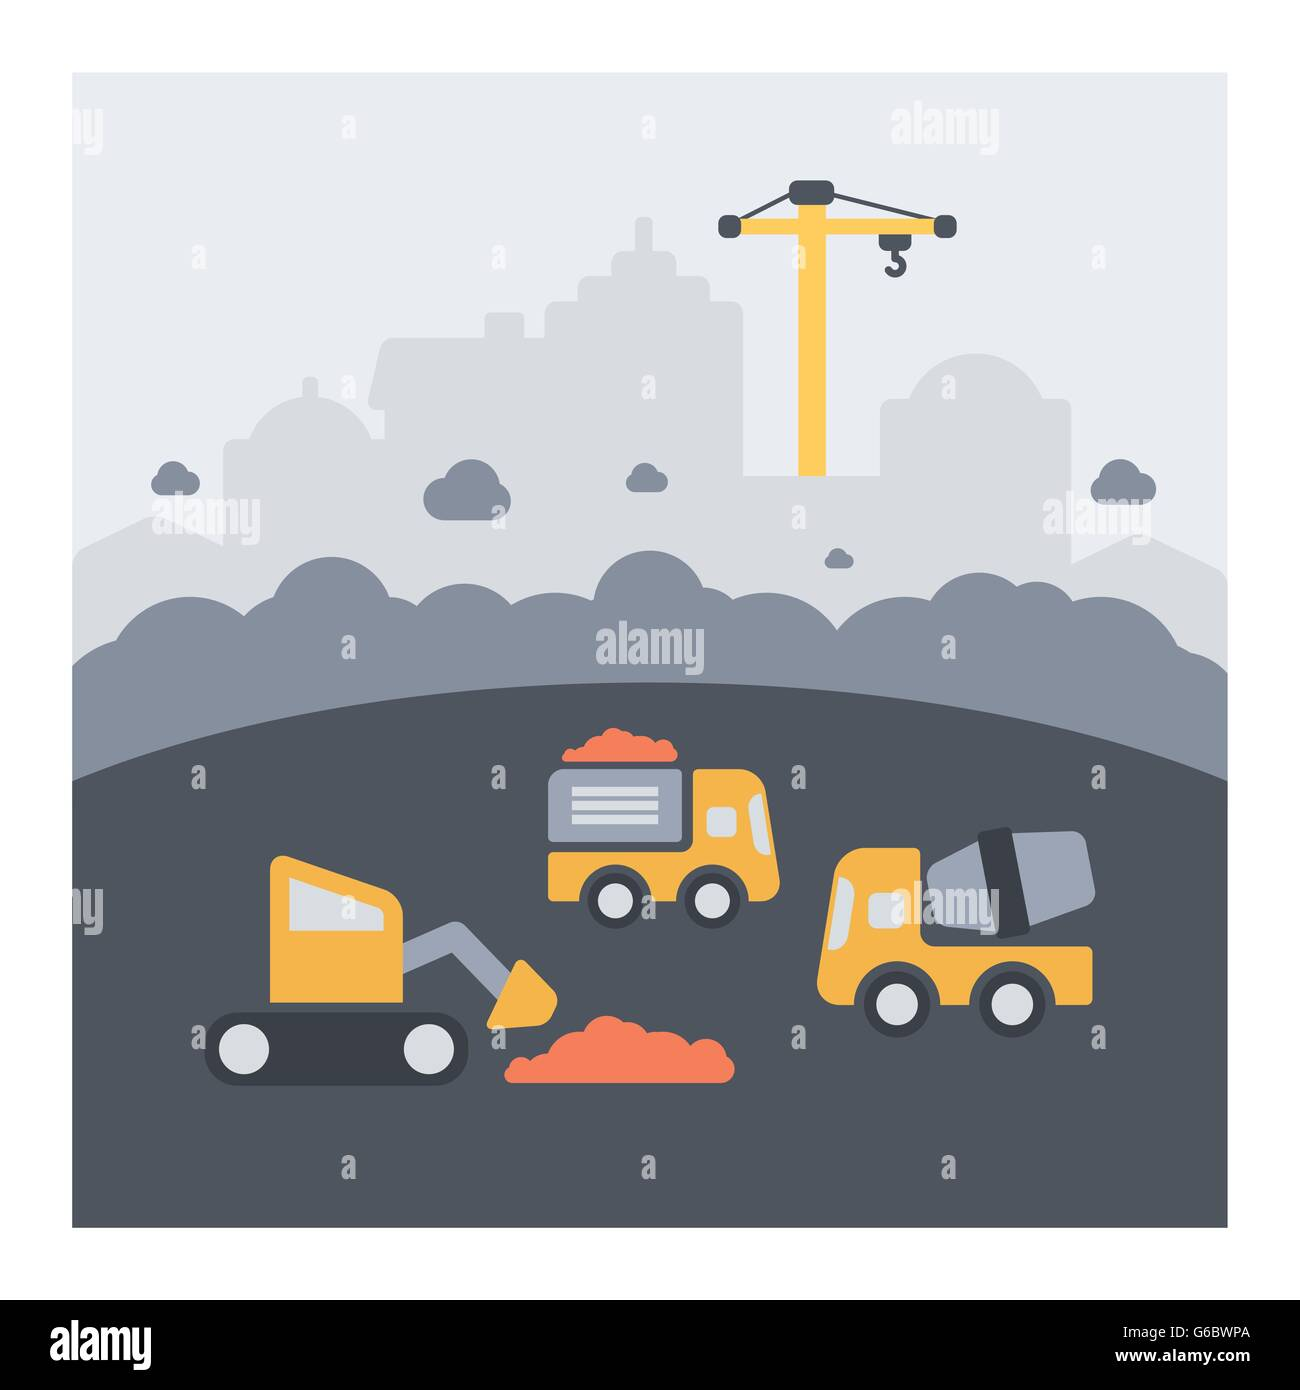 Urban landscape of urban construction work. Flat icons, dust and vehicles in action. - Stock Vector